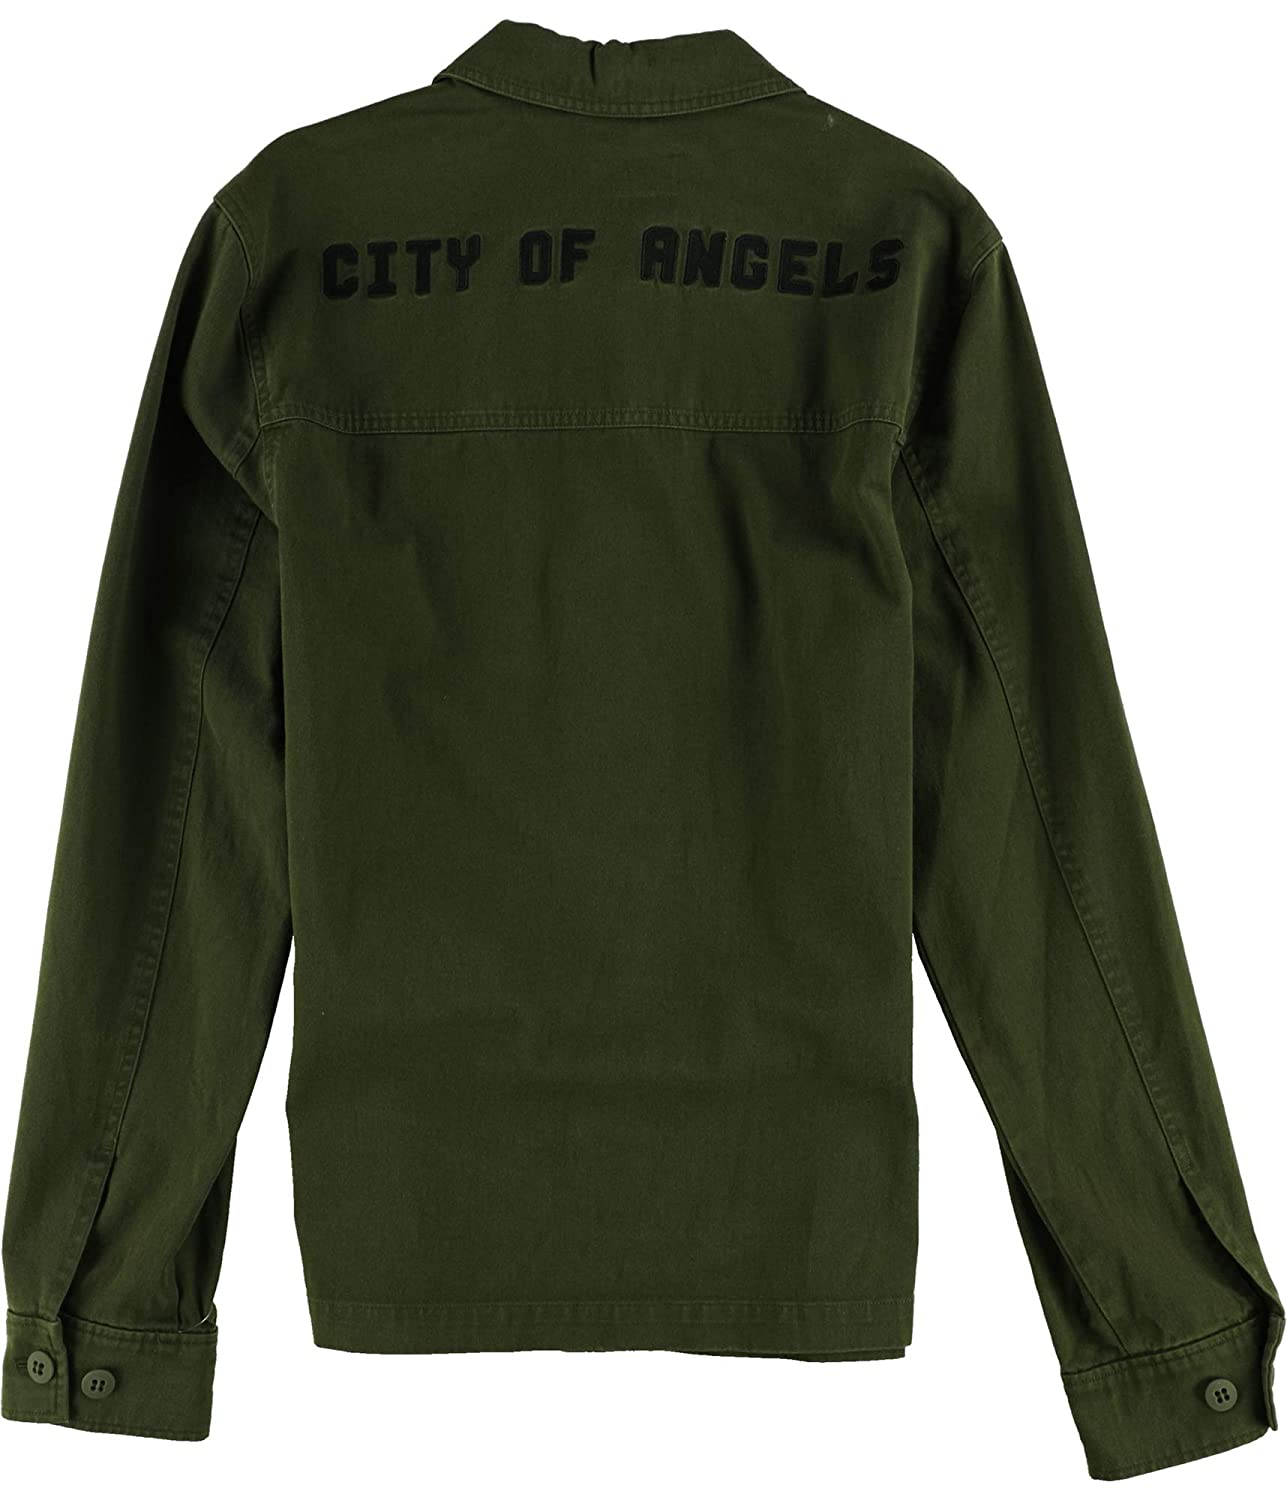 PAIGE Mens Dalton City of Angels Shirt Jacket